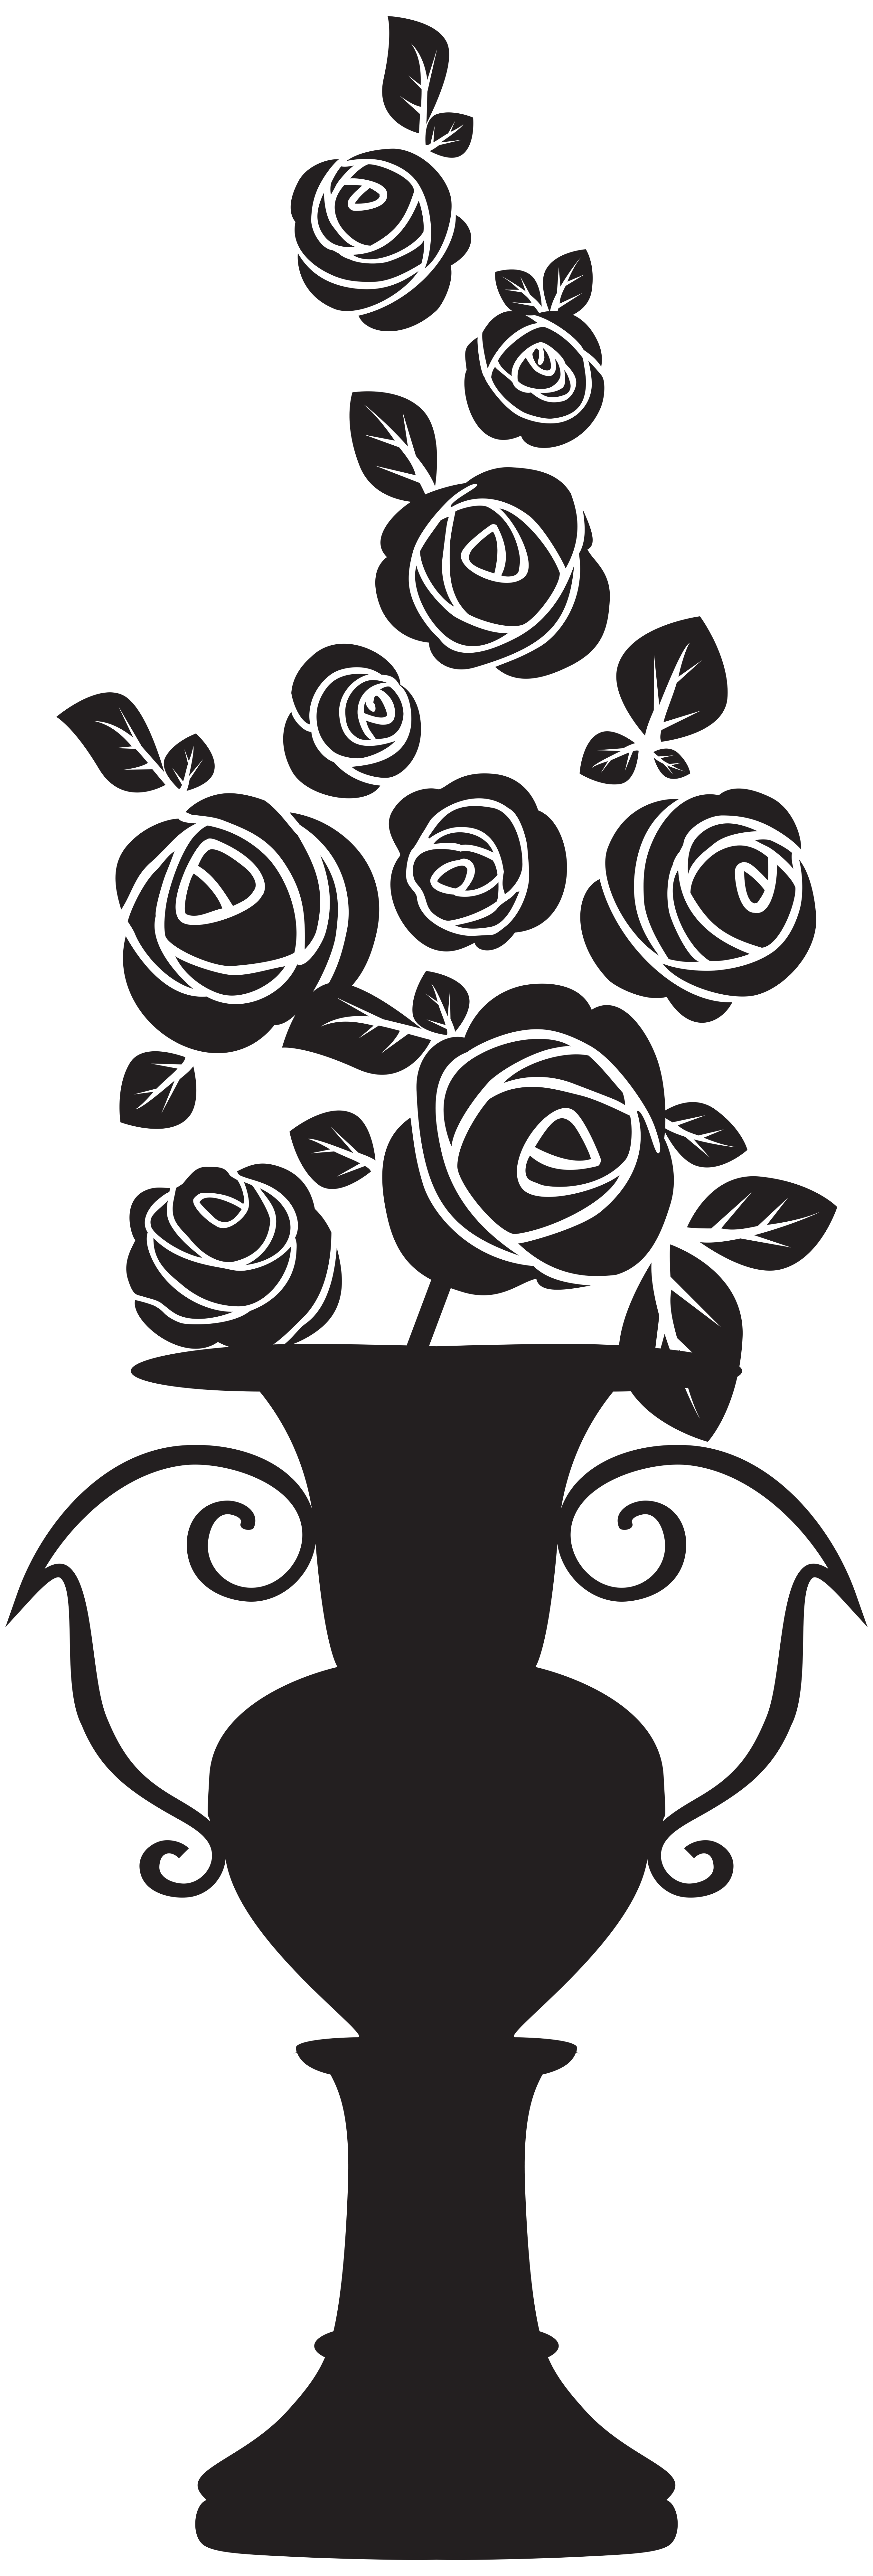 Clipart rose silhouette. Vase with roses png